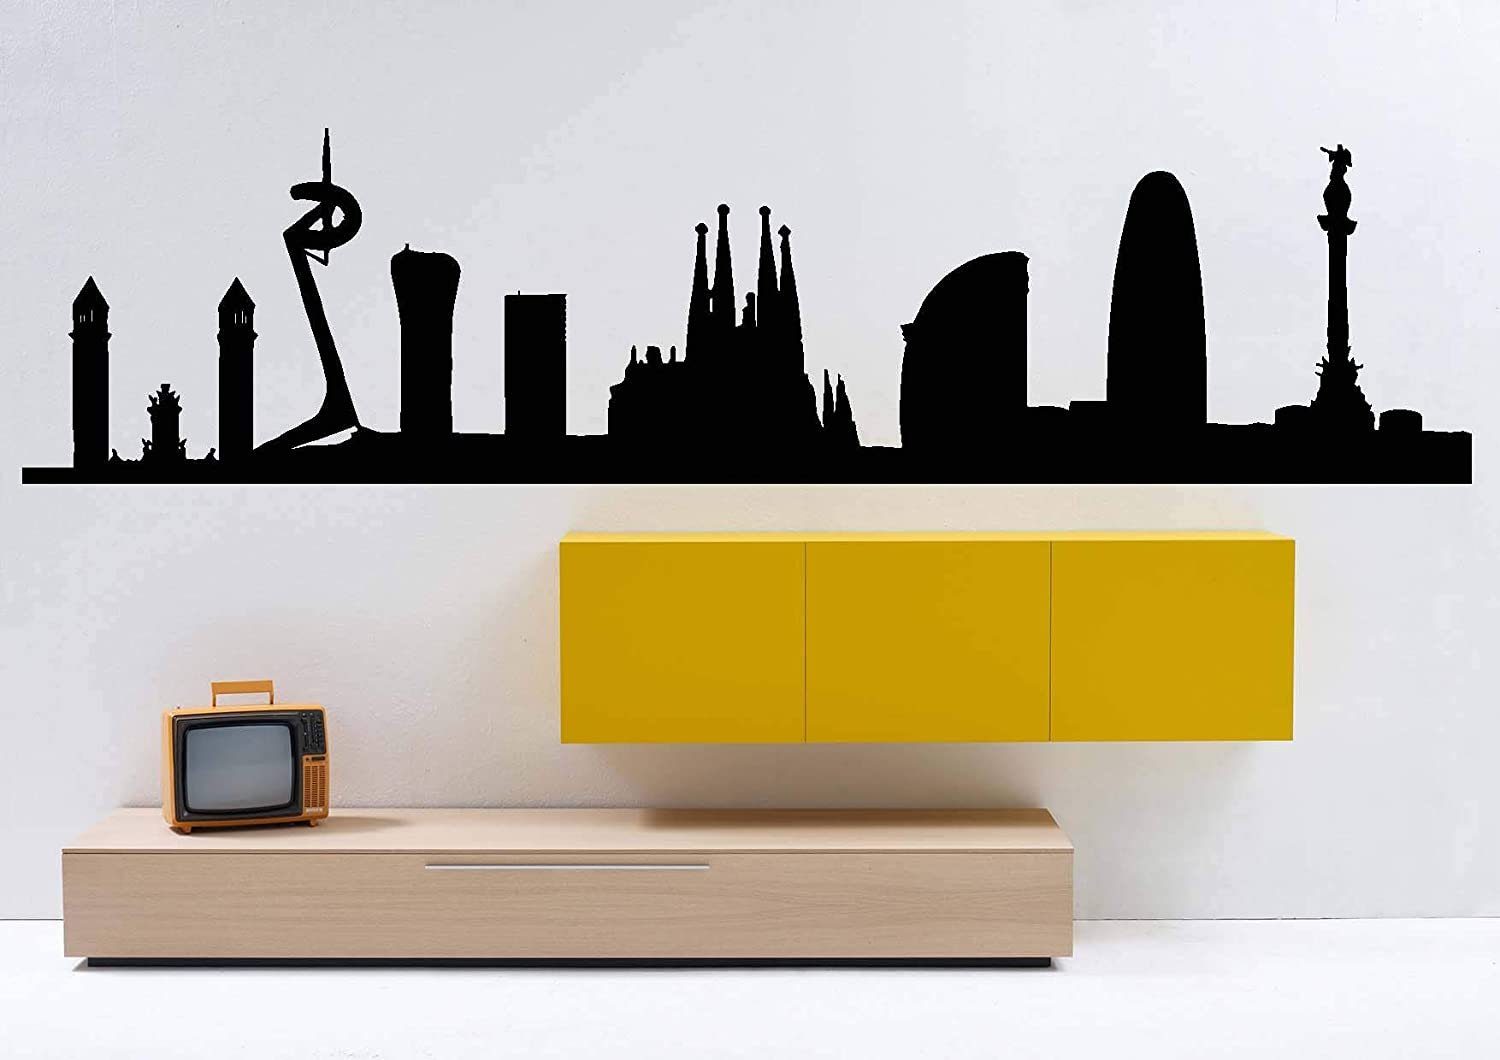 Barcelona Spain City Skyline Interior Wall Decal Sticker WITHOUT Lettering